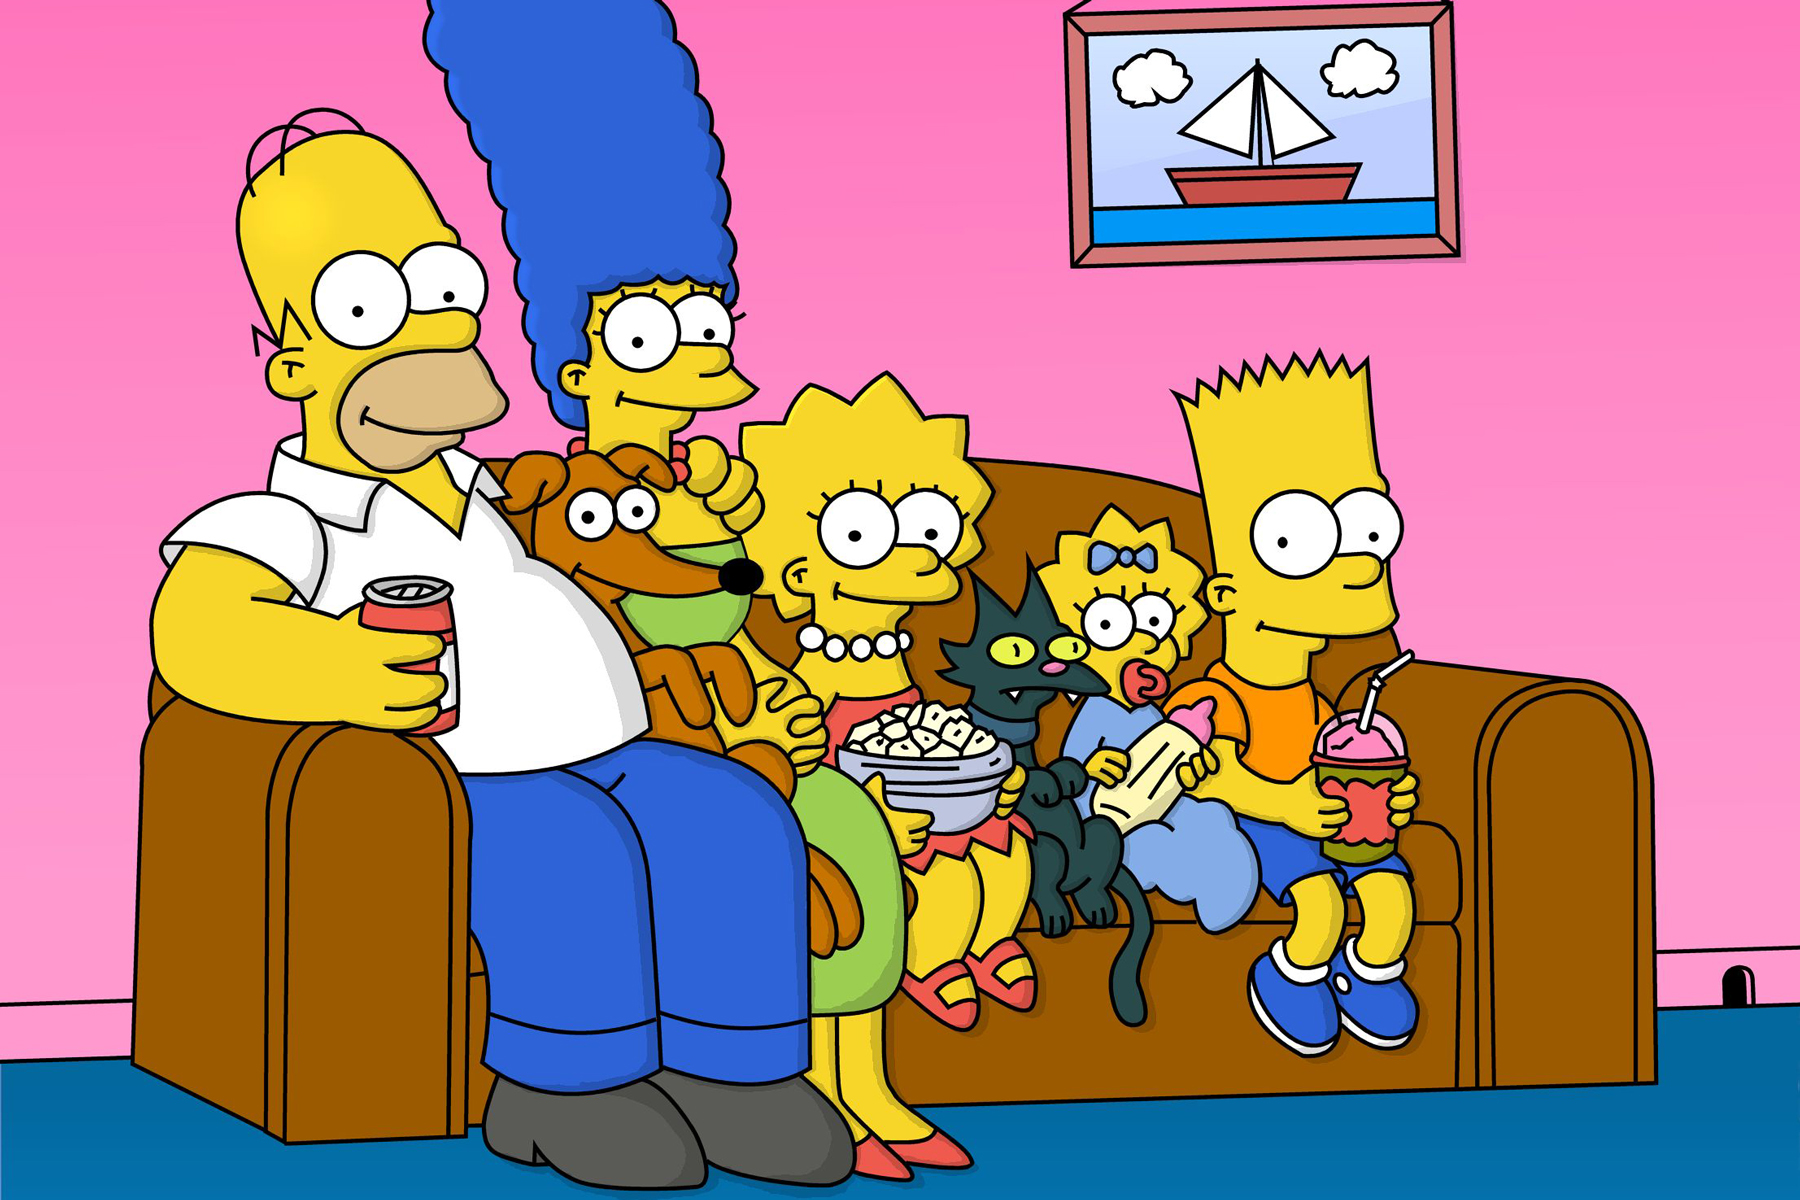 Search Pantone Color The Simpsons Quotes Screenshot Search Engine